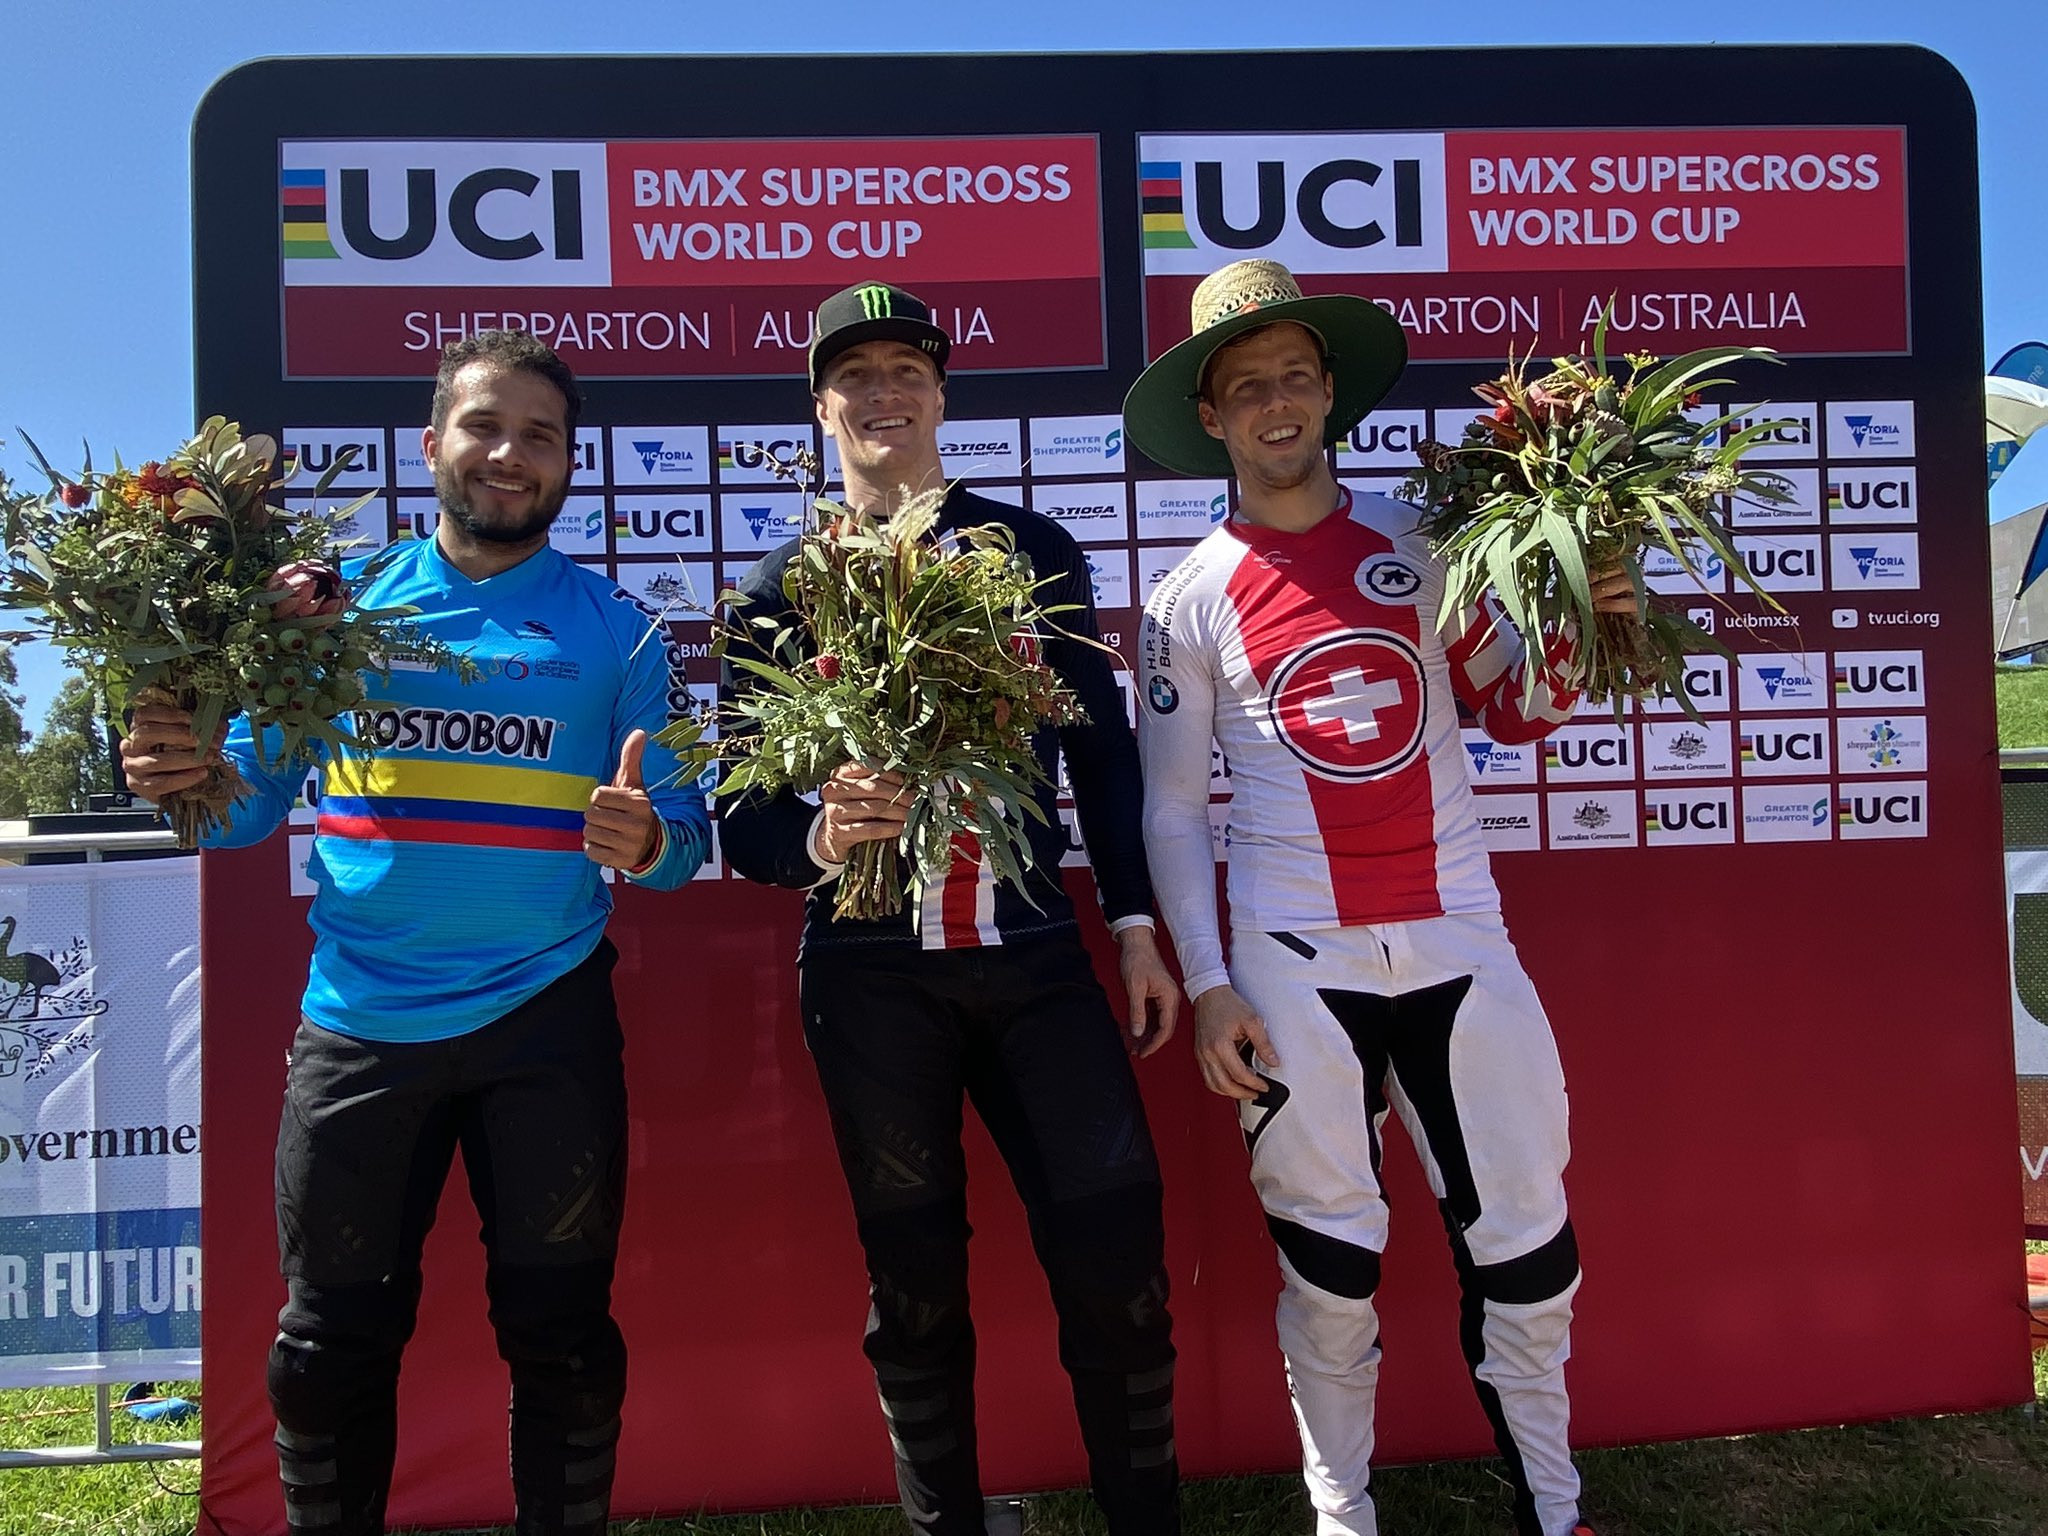 Olympic champion Connor Fields won the competition, followed by Carlos Alberto Ramírez Yepes of Colombia and David Graf of Switzerland ©UCI